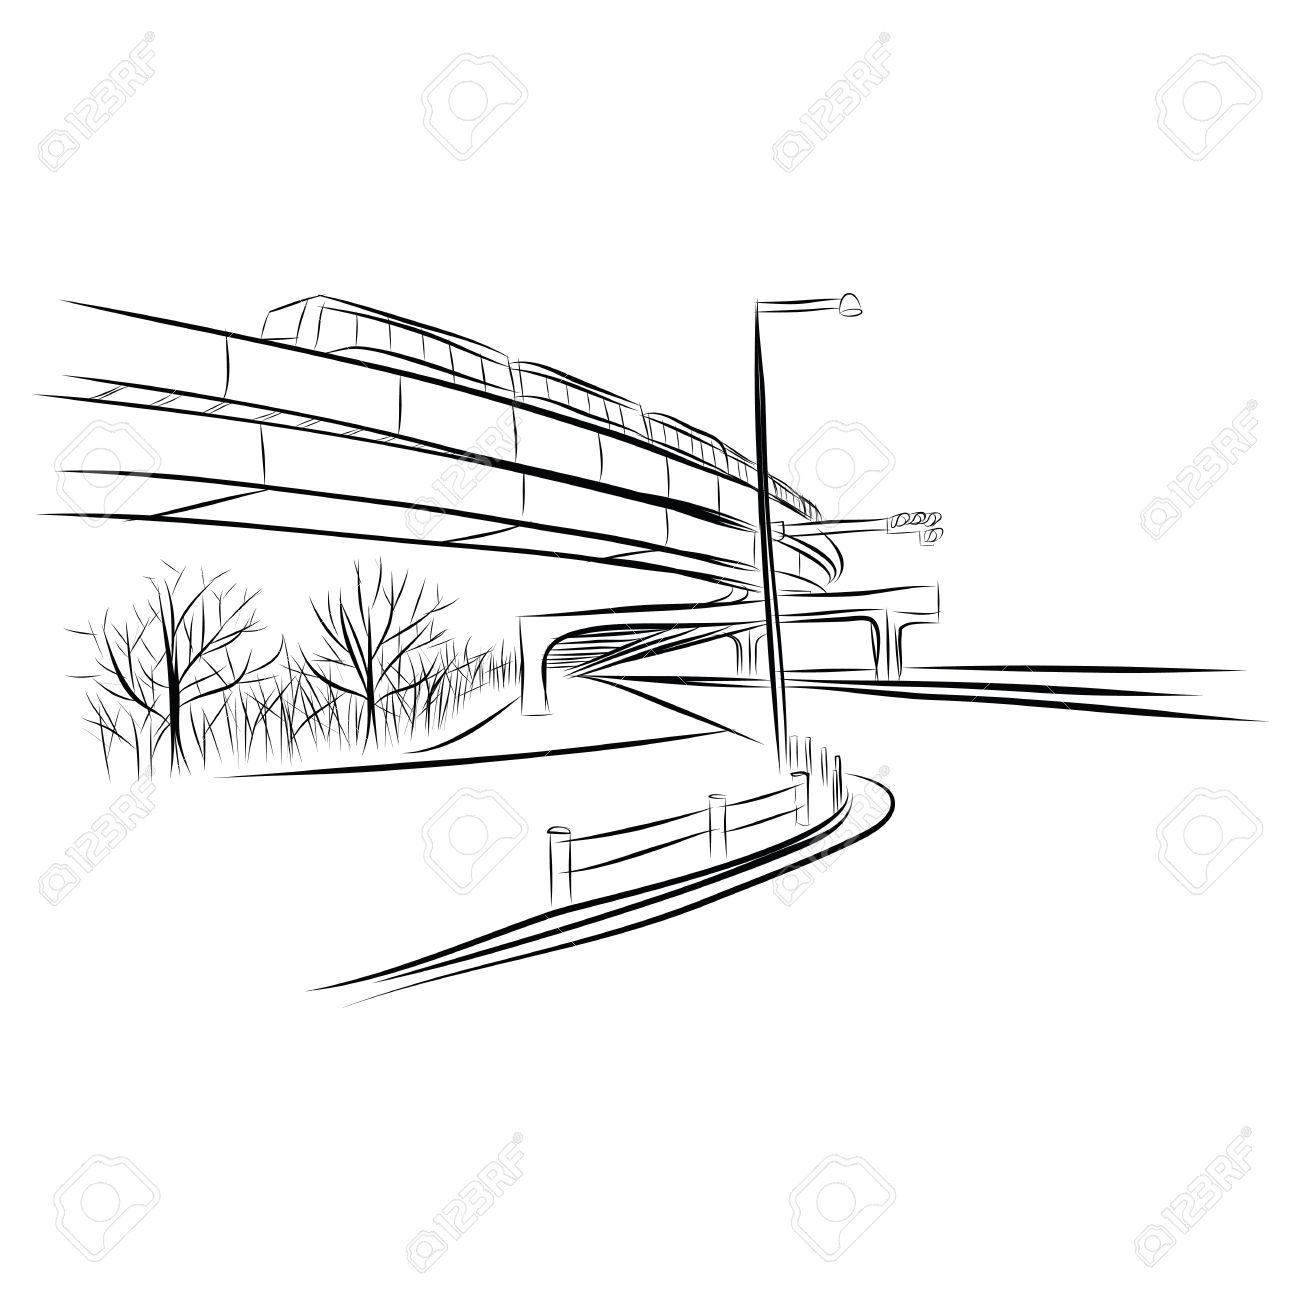 The abstract of Road under overpass sky train bridge hand drawn Stock Vector - 18657048